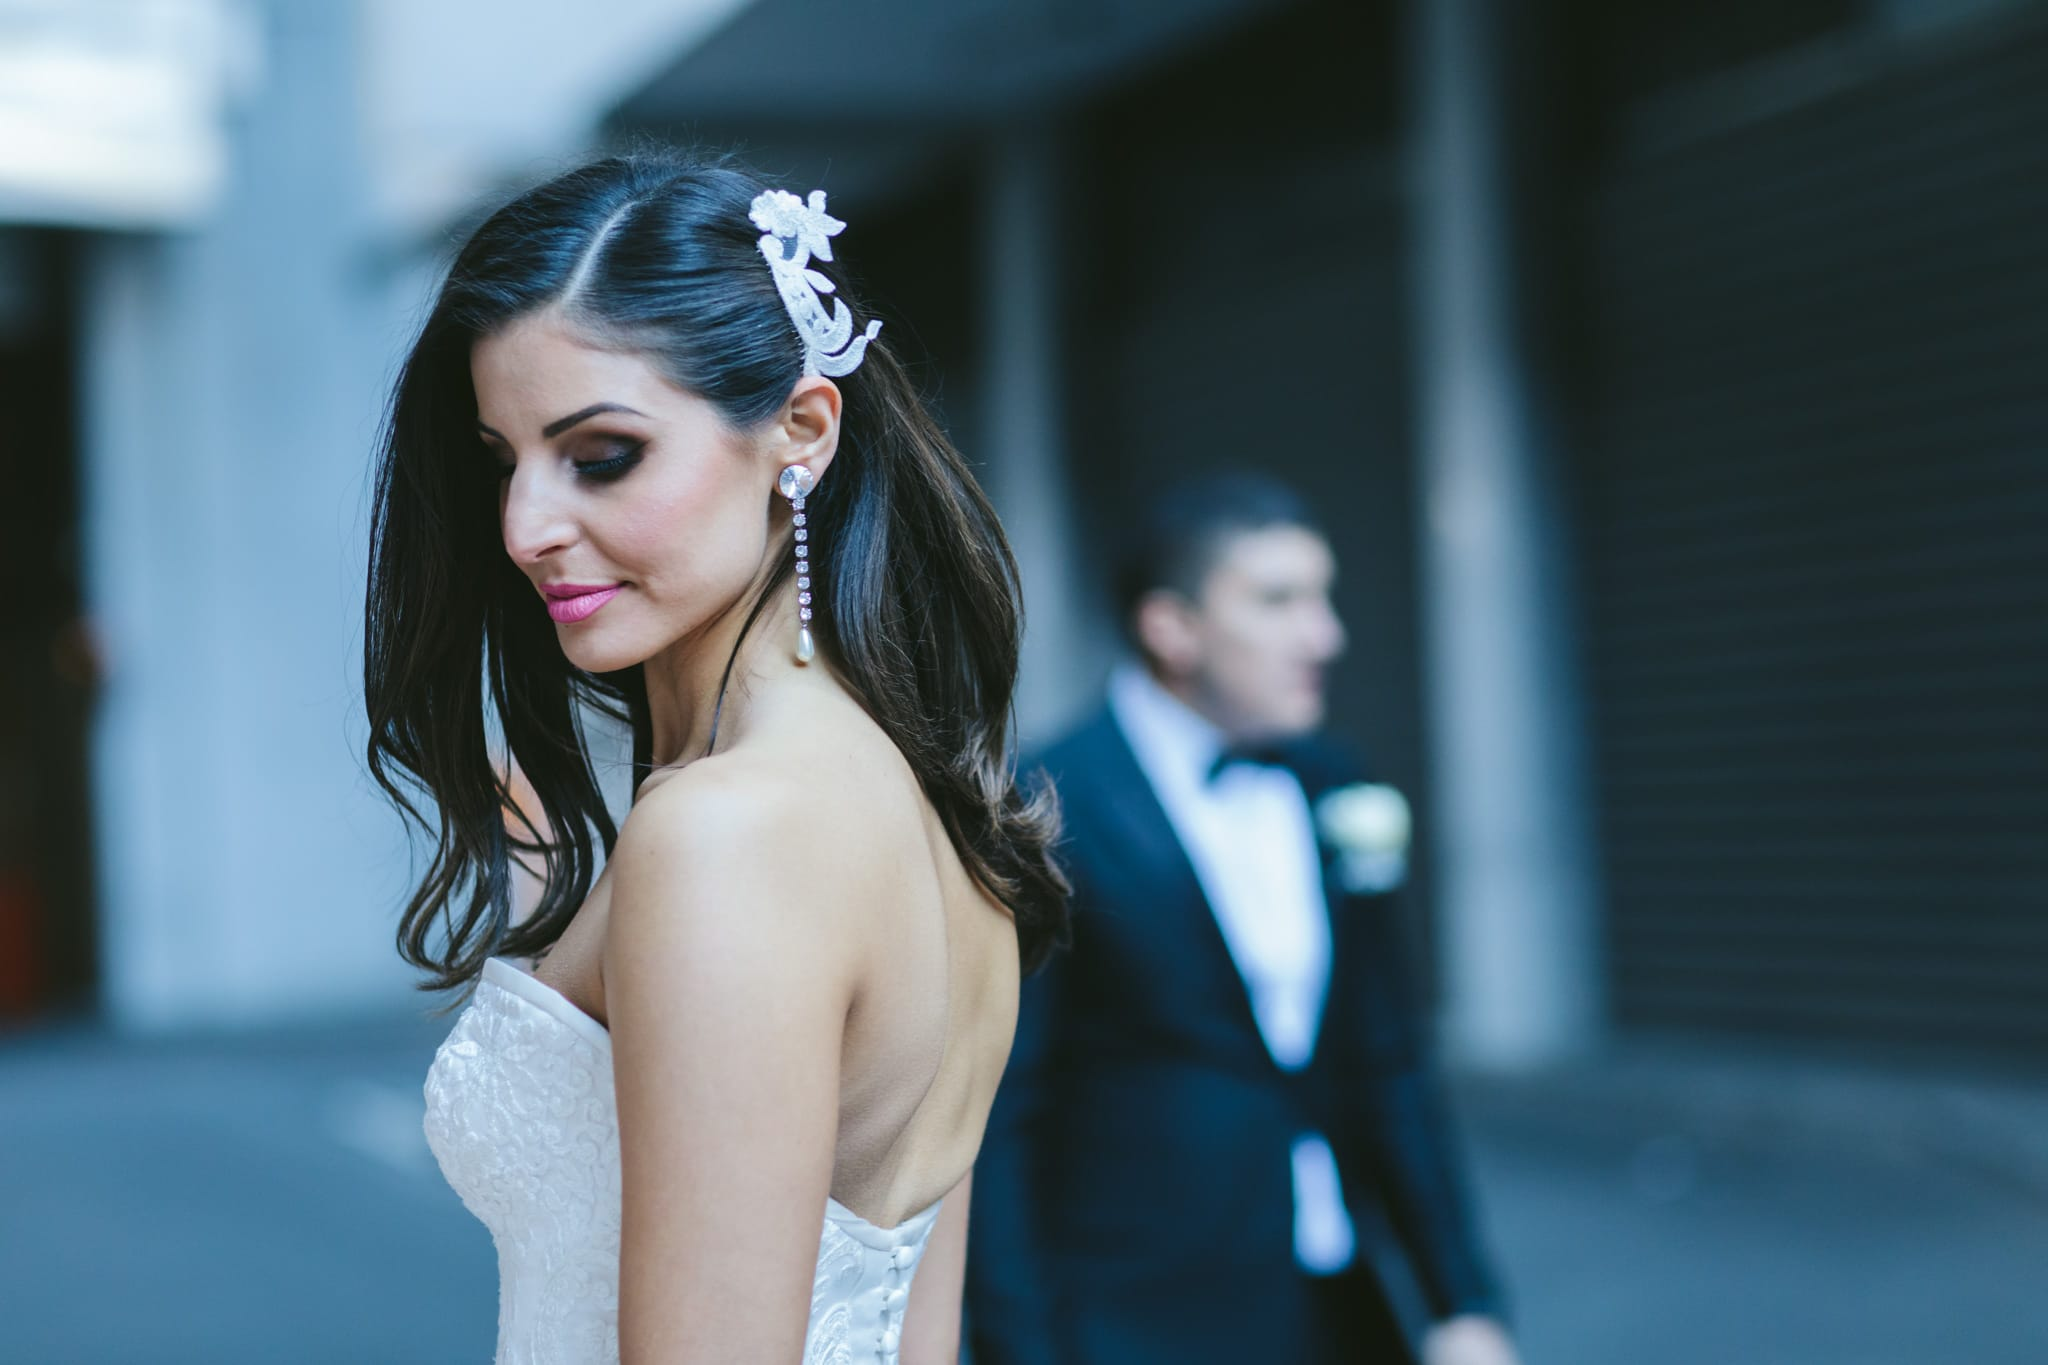 creative wedding photographer in the melbourne city - australian award winning photographer